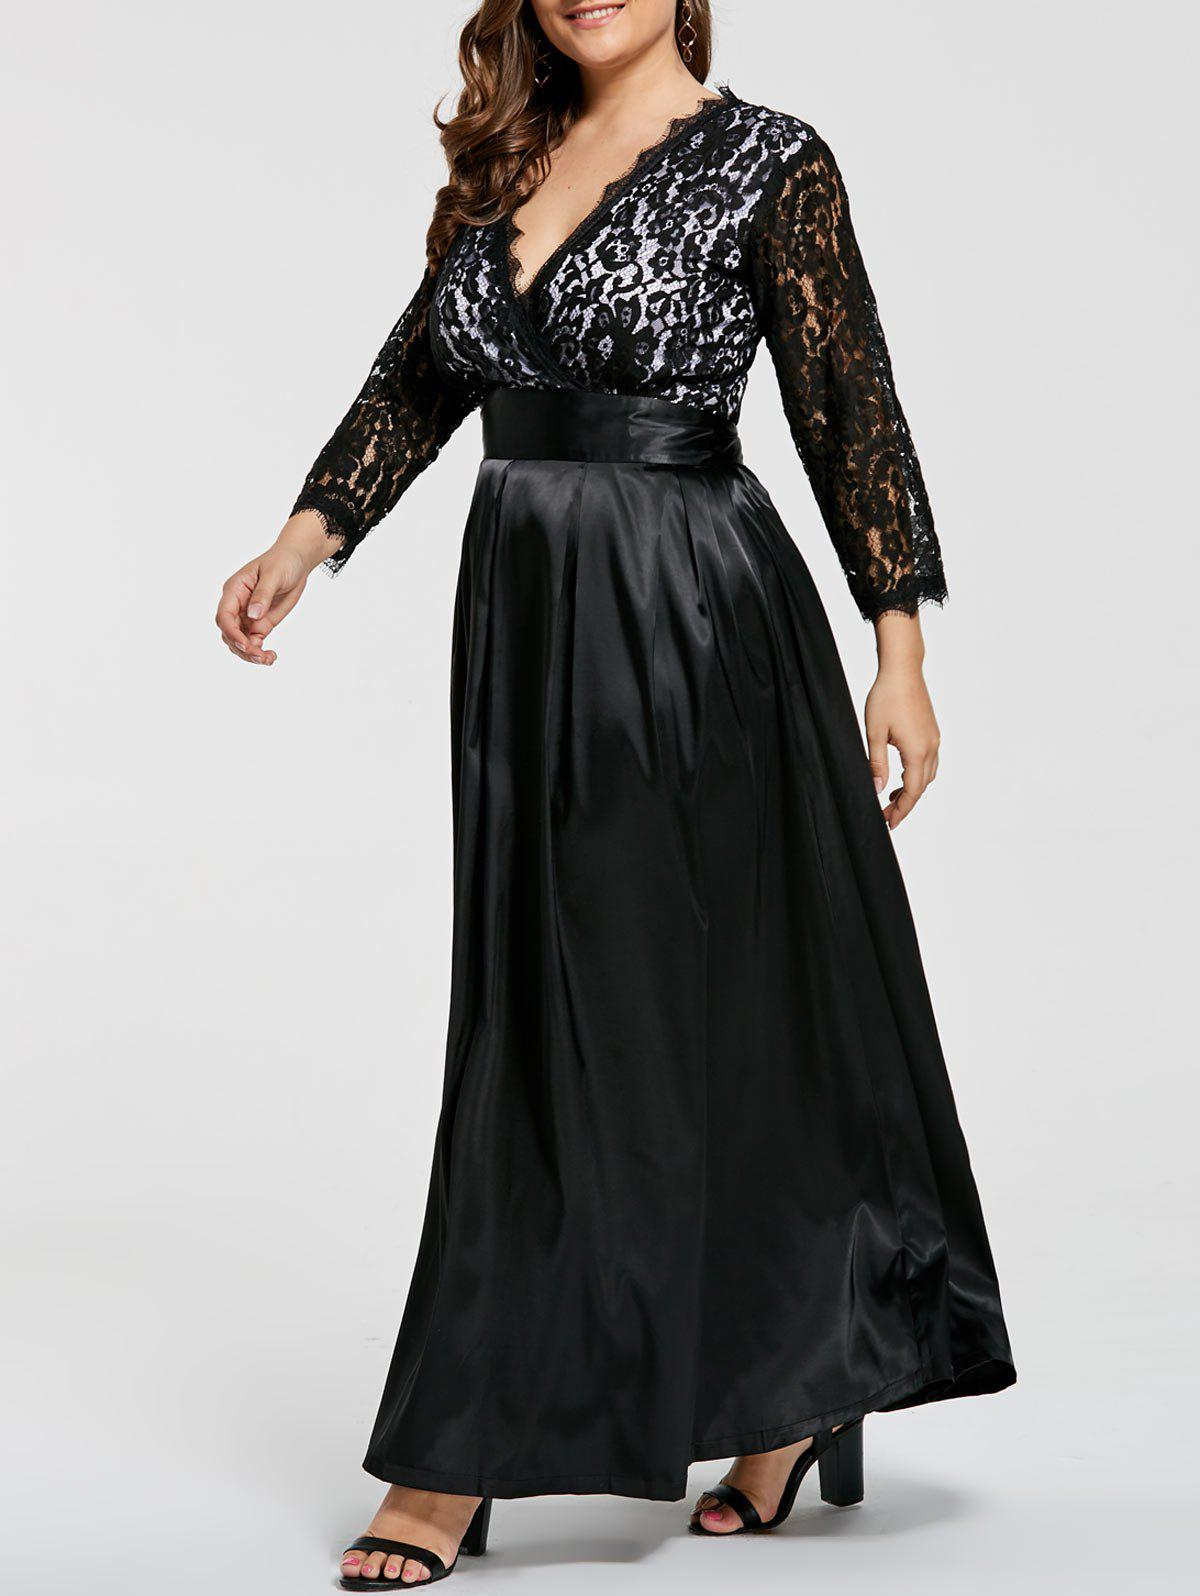 2018 Lace Sleeve V Neck Plus Size Evening Dress In Black 5xl ...